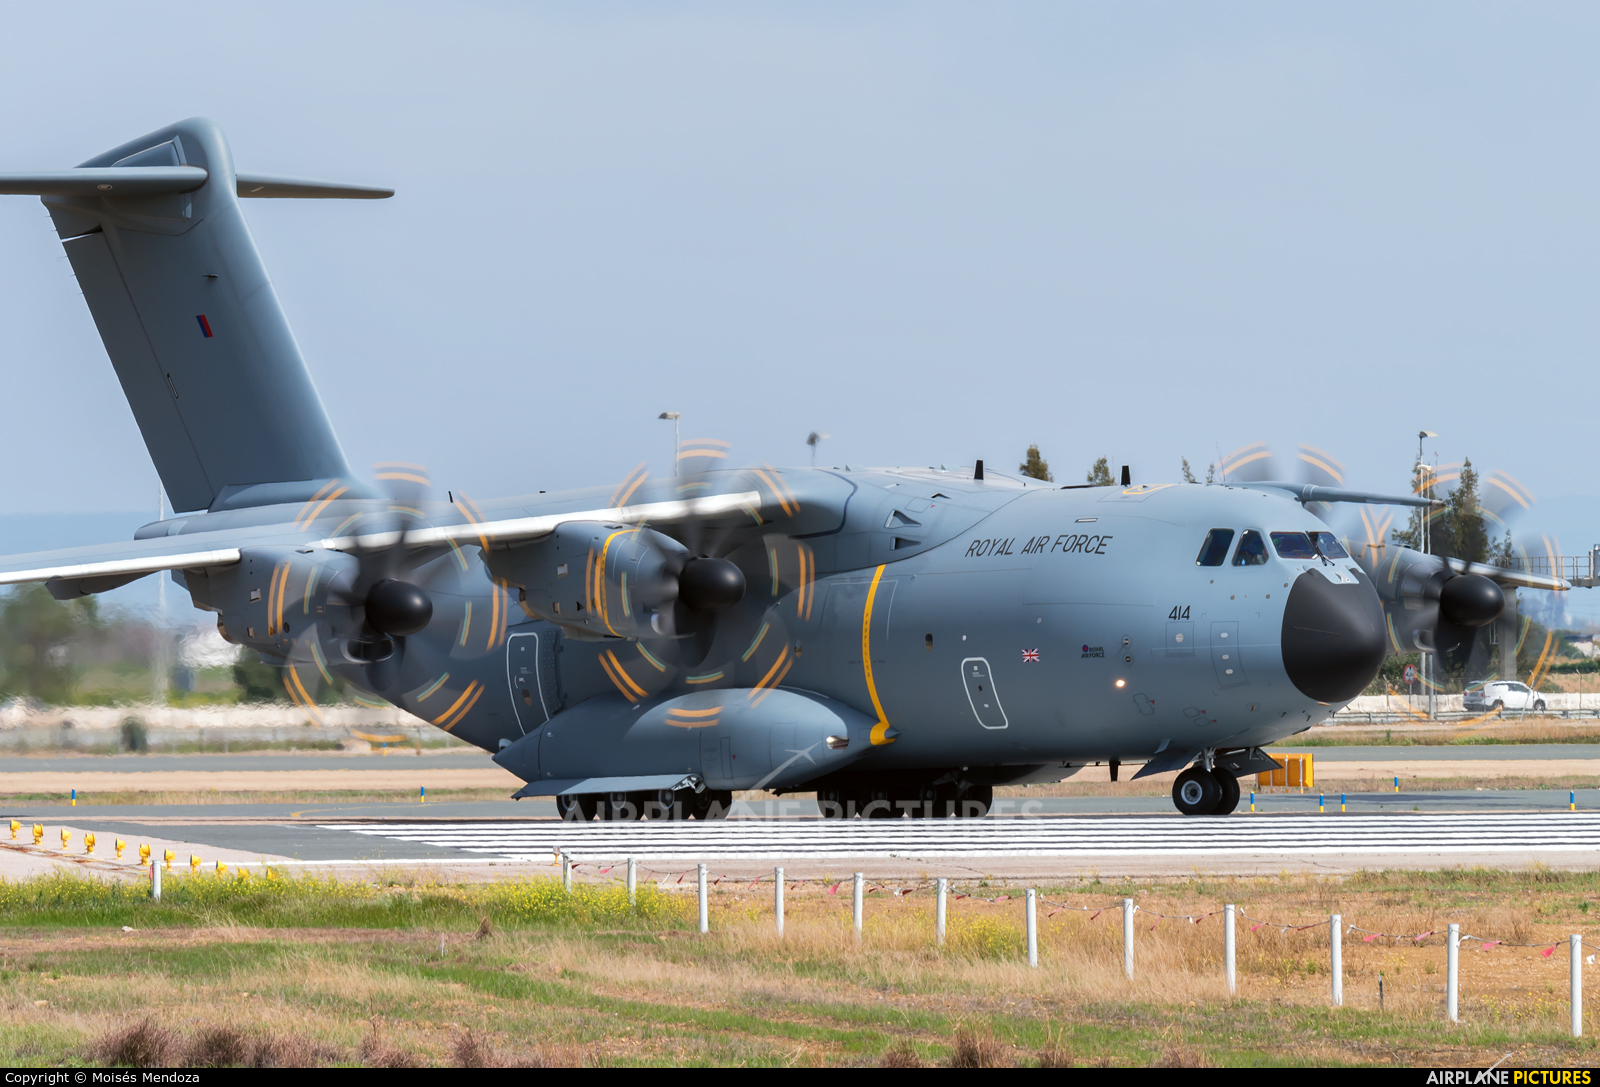 Royal Air Force ZM414 aircraft at Seville - San Pablo